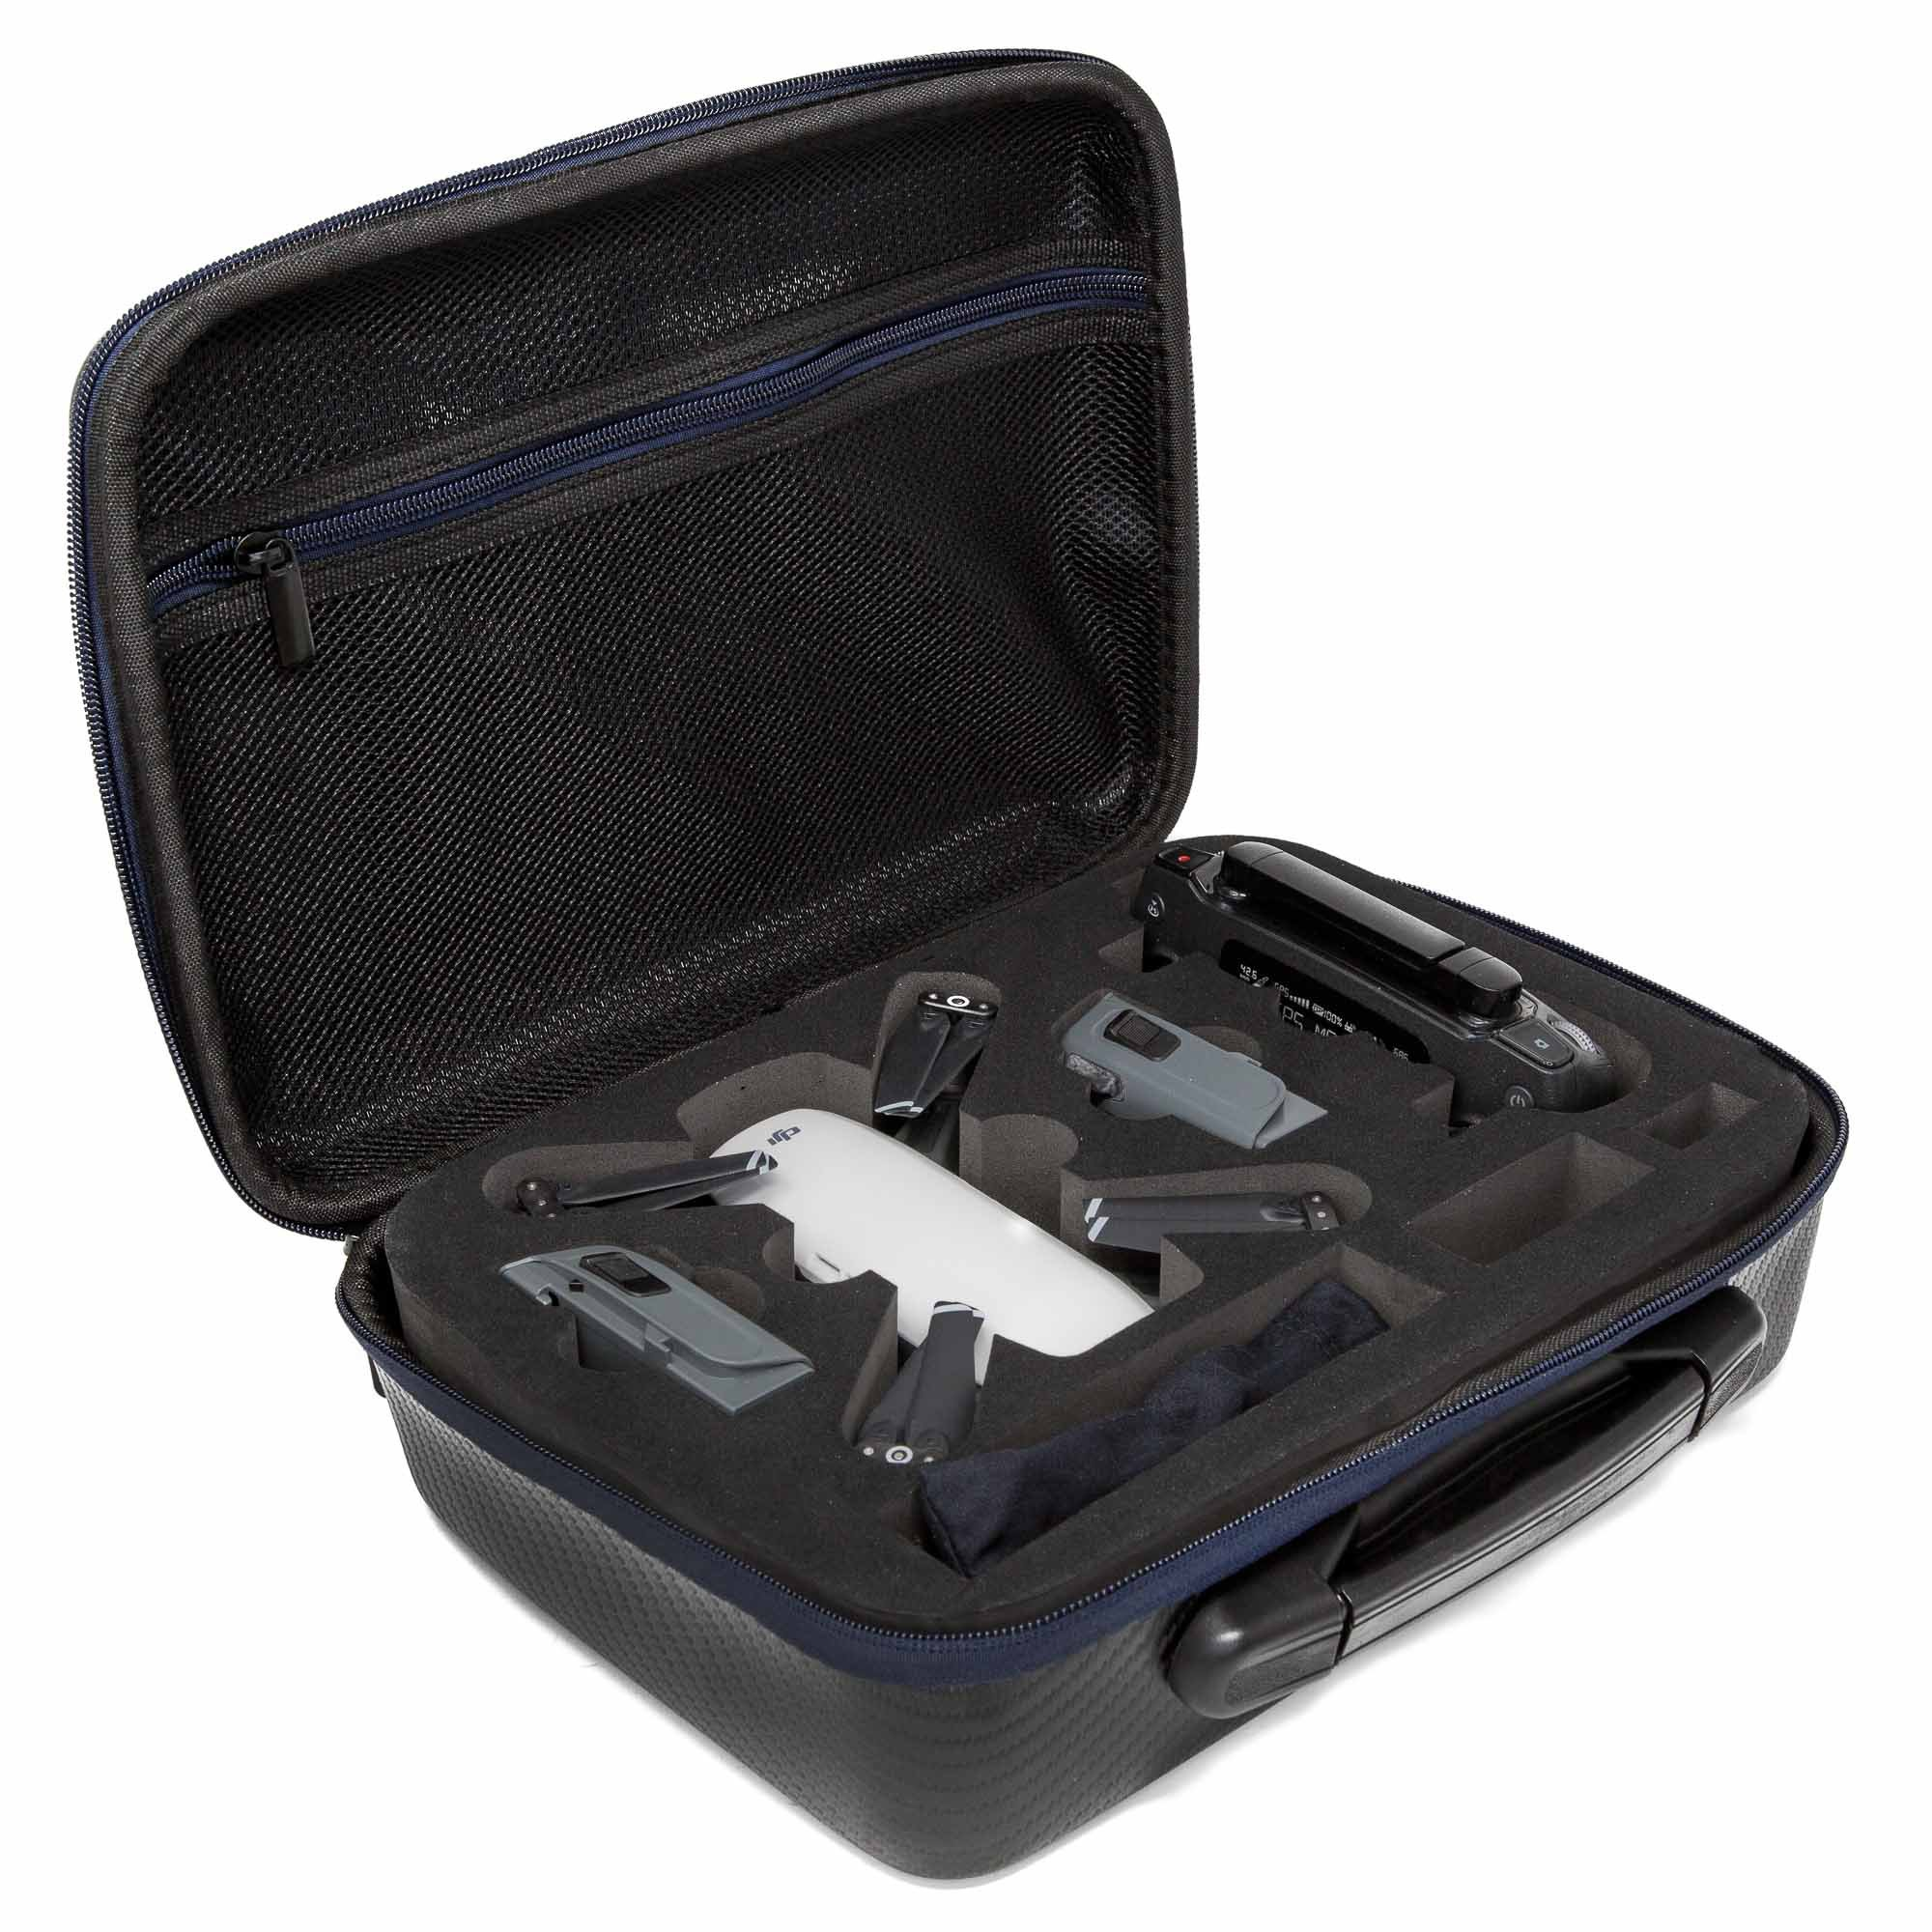 Ultimaxx Water-Resistant Rugged Hard Shell Compact Storage Case for DJI Spark Drone and Accessories